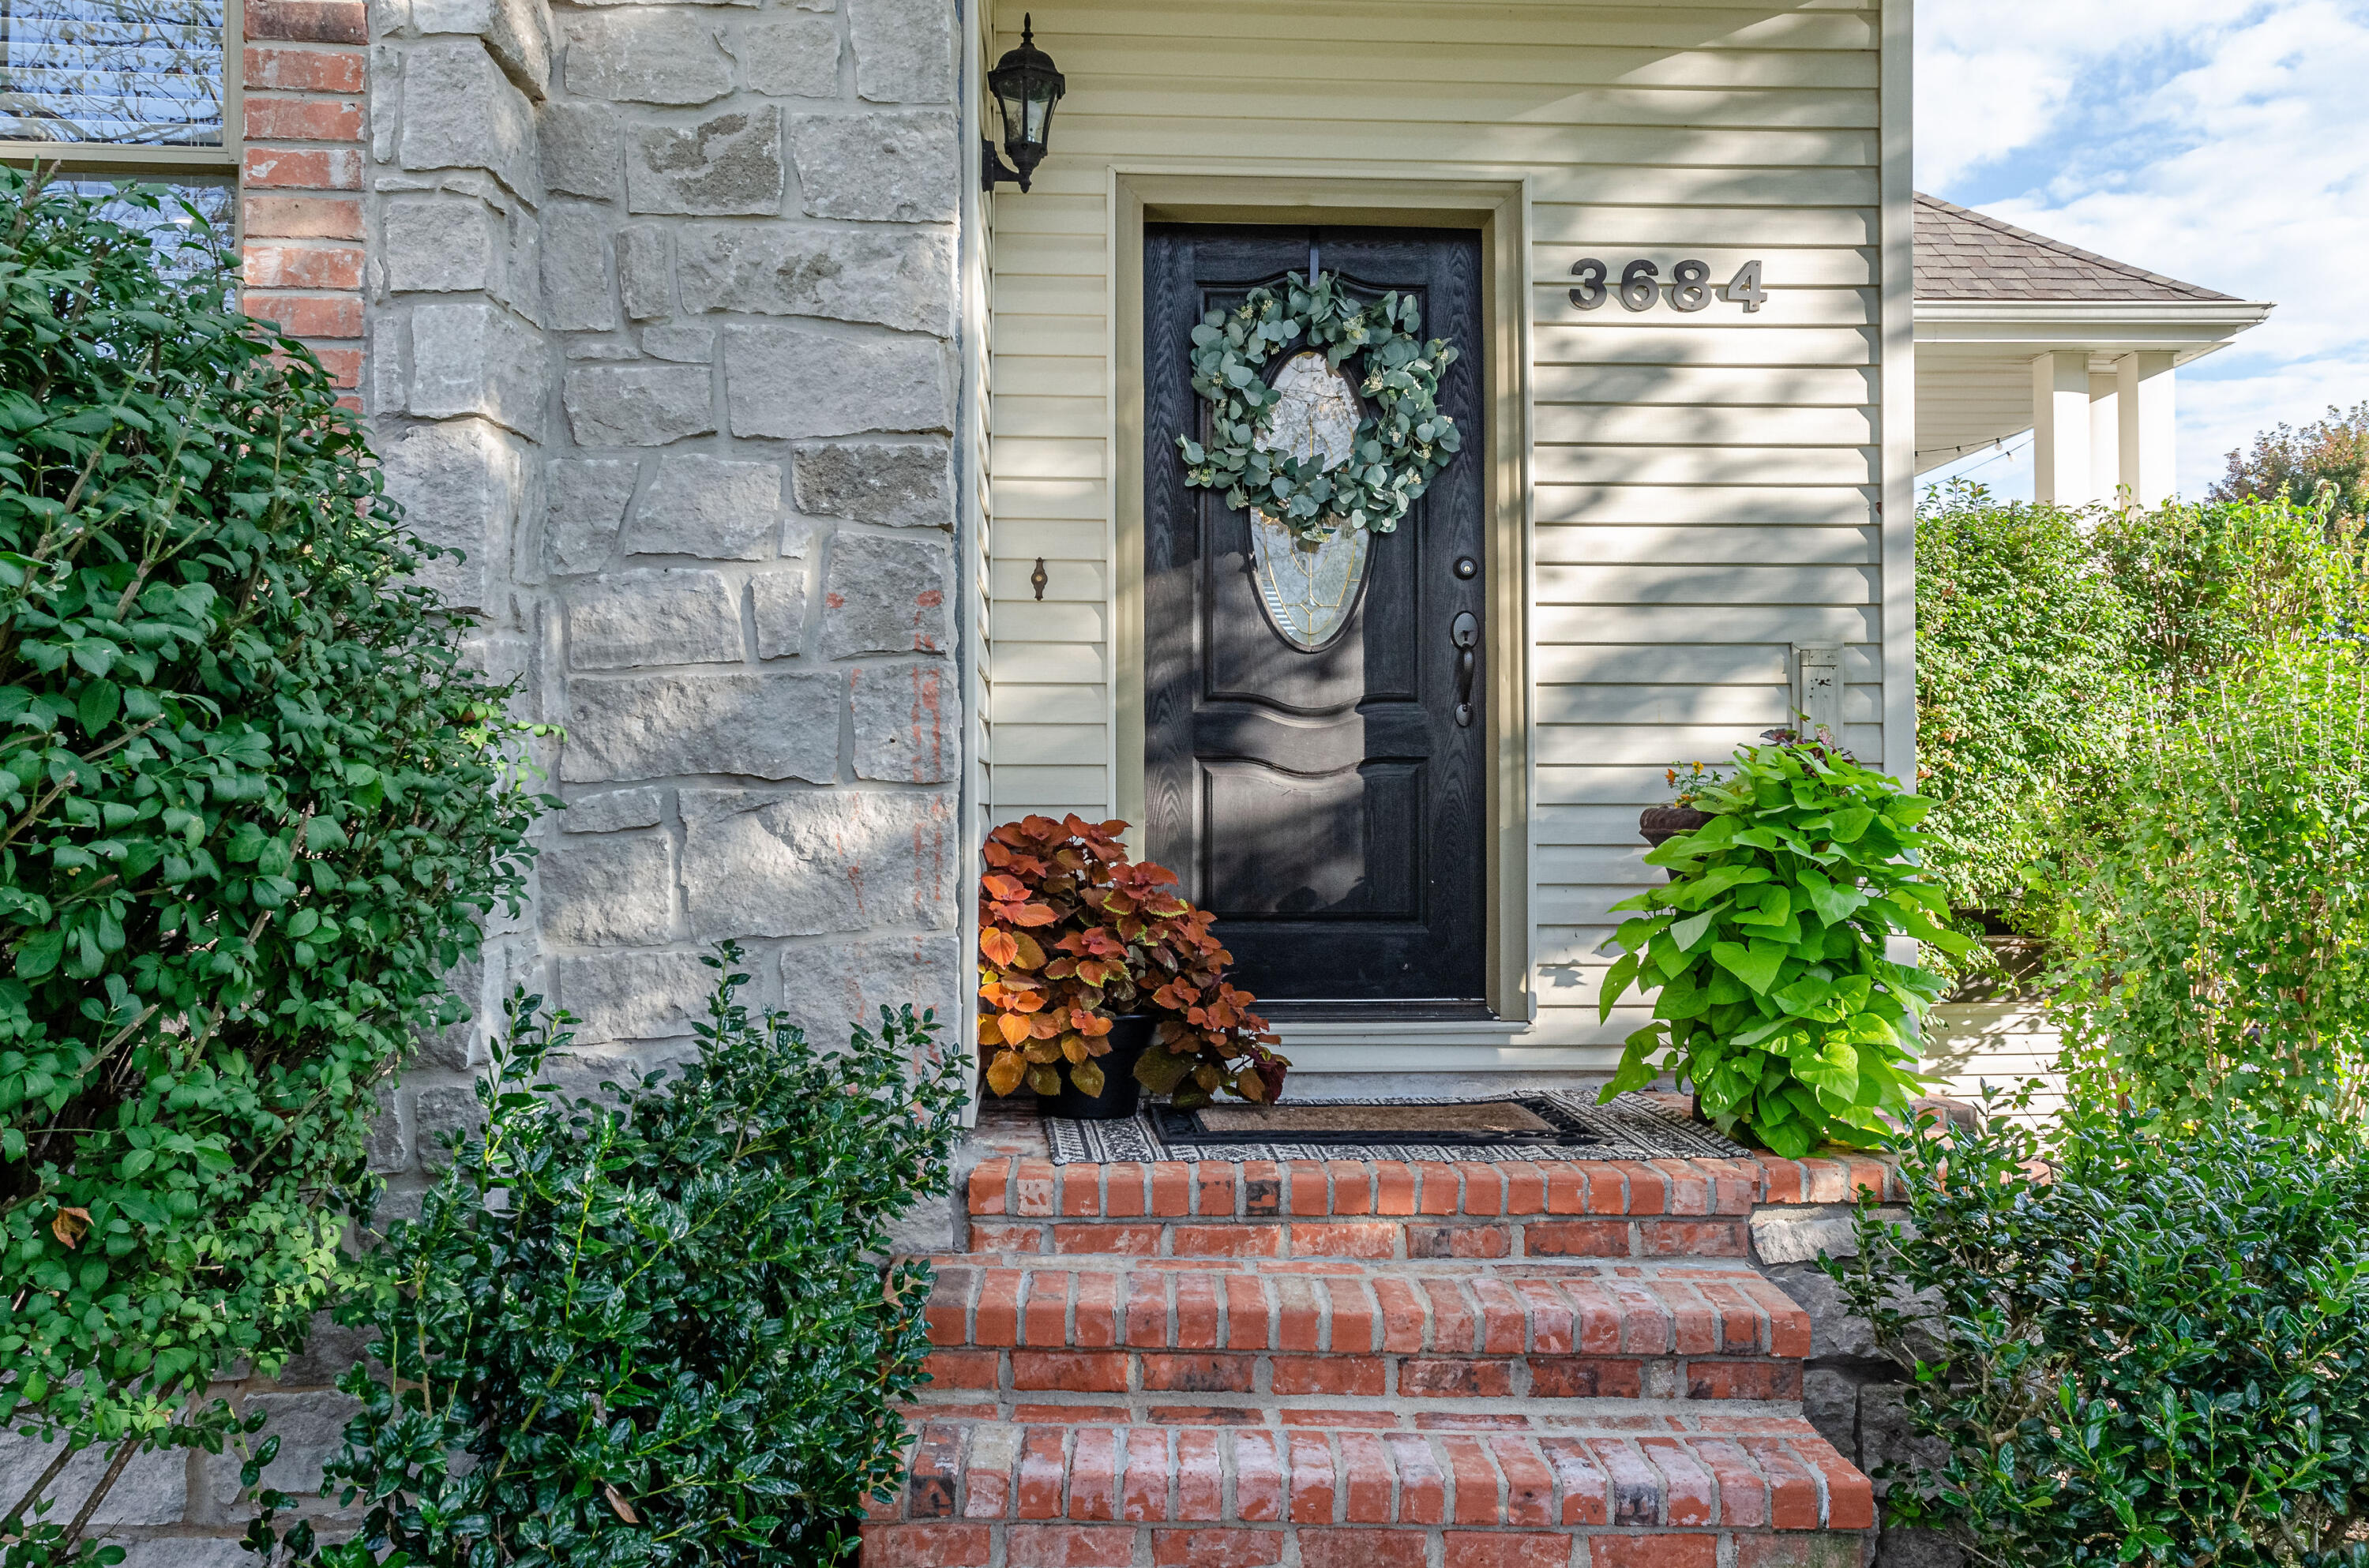 3684 East Beaumont Street Springfield, MO 65809